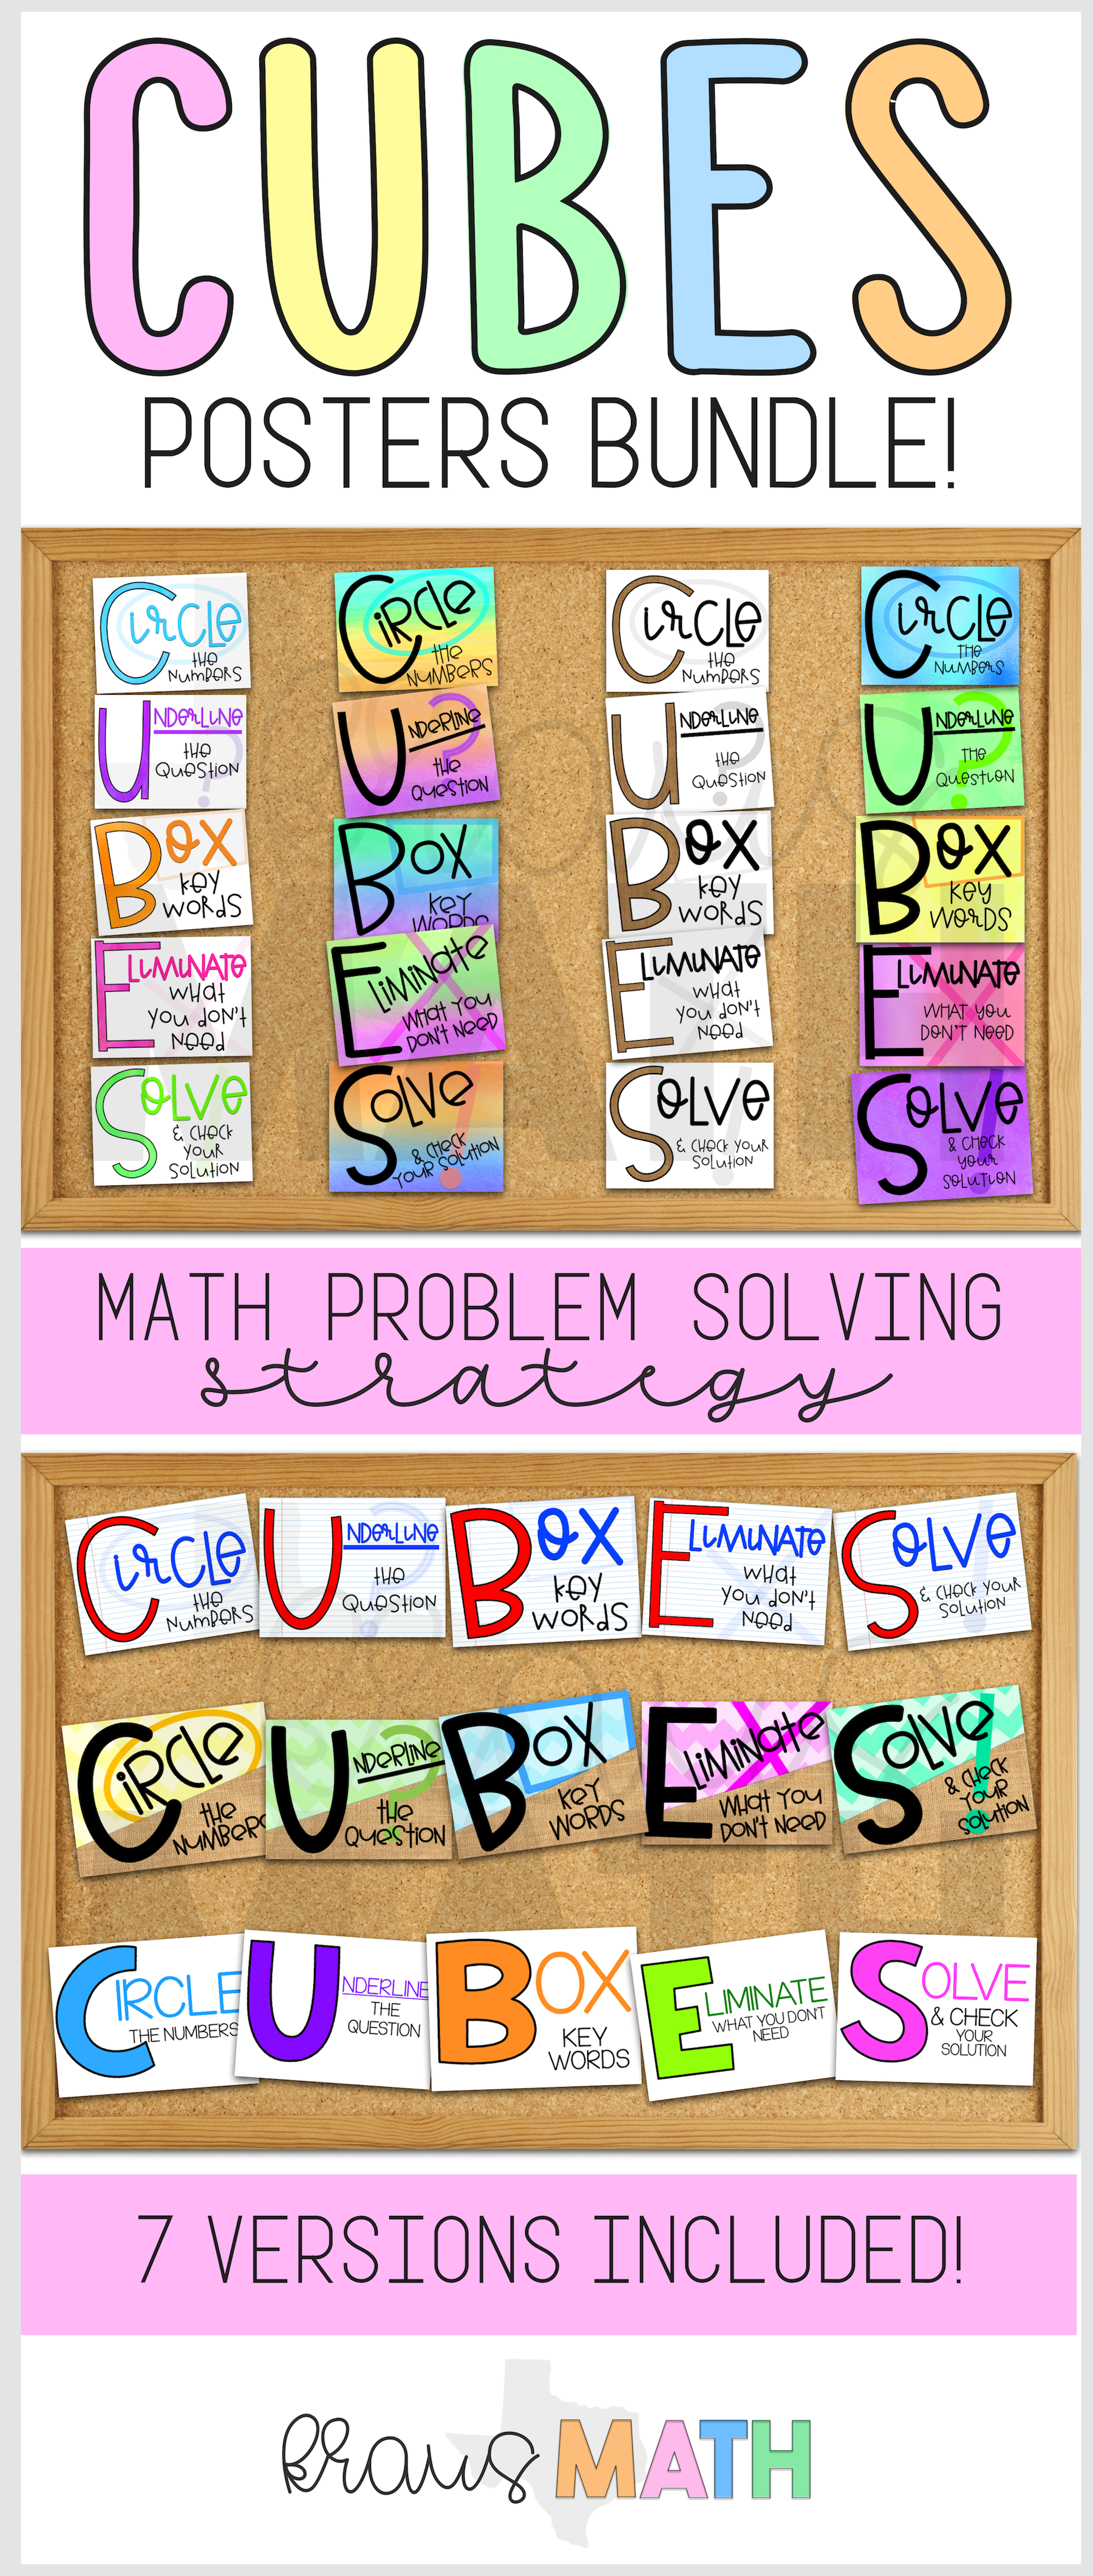 eworkshop problem solving posters